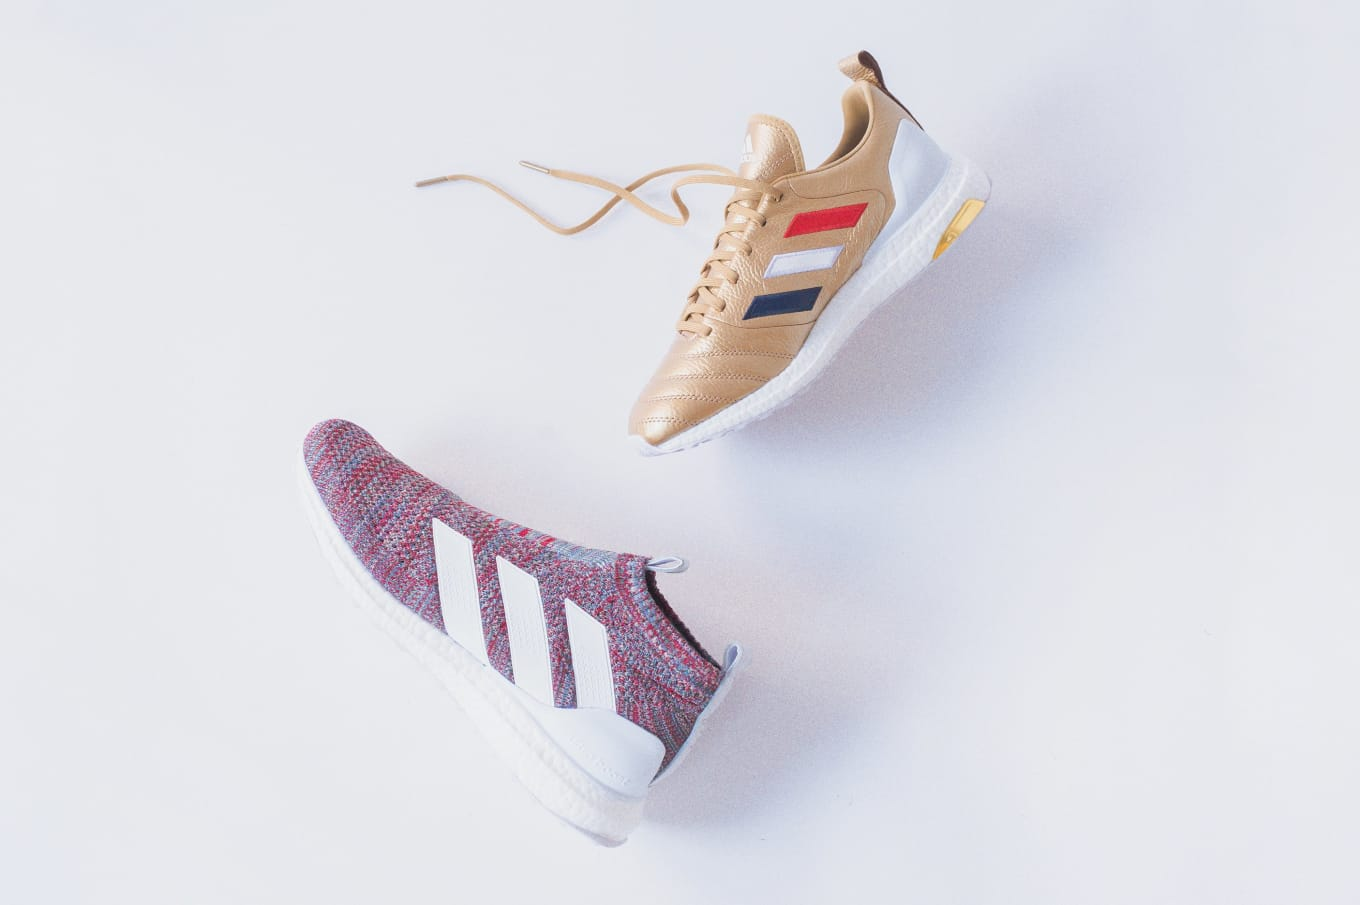 157c466cae6d6 Kith x Adidas Soccer Chapter 3 Footwear Release Date